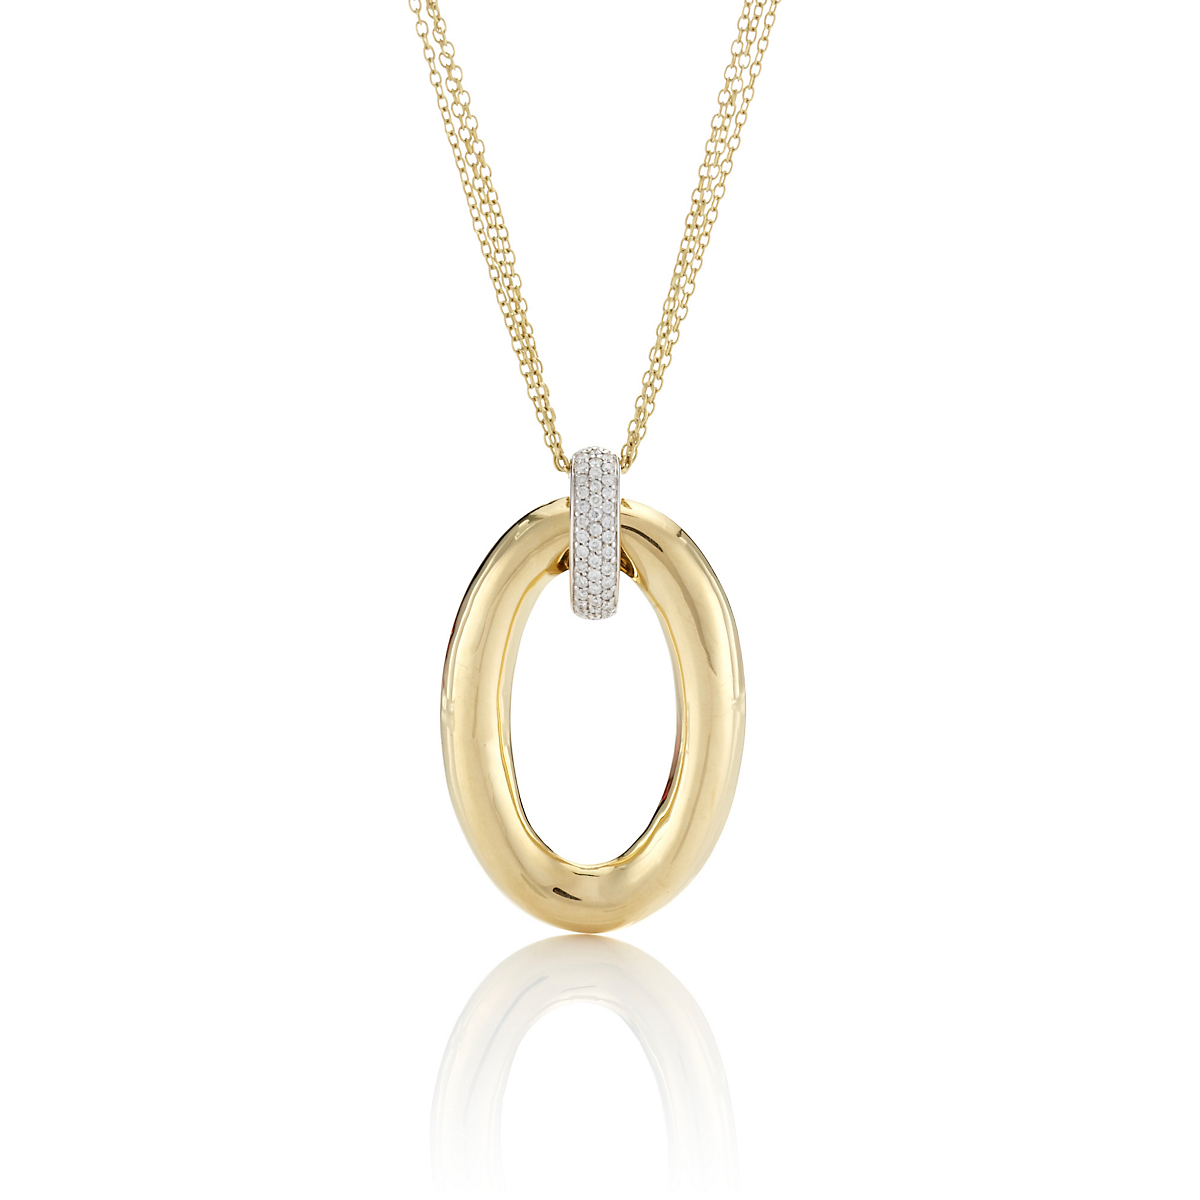 Oval Diamond Triple Chain Pendant Necklace